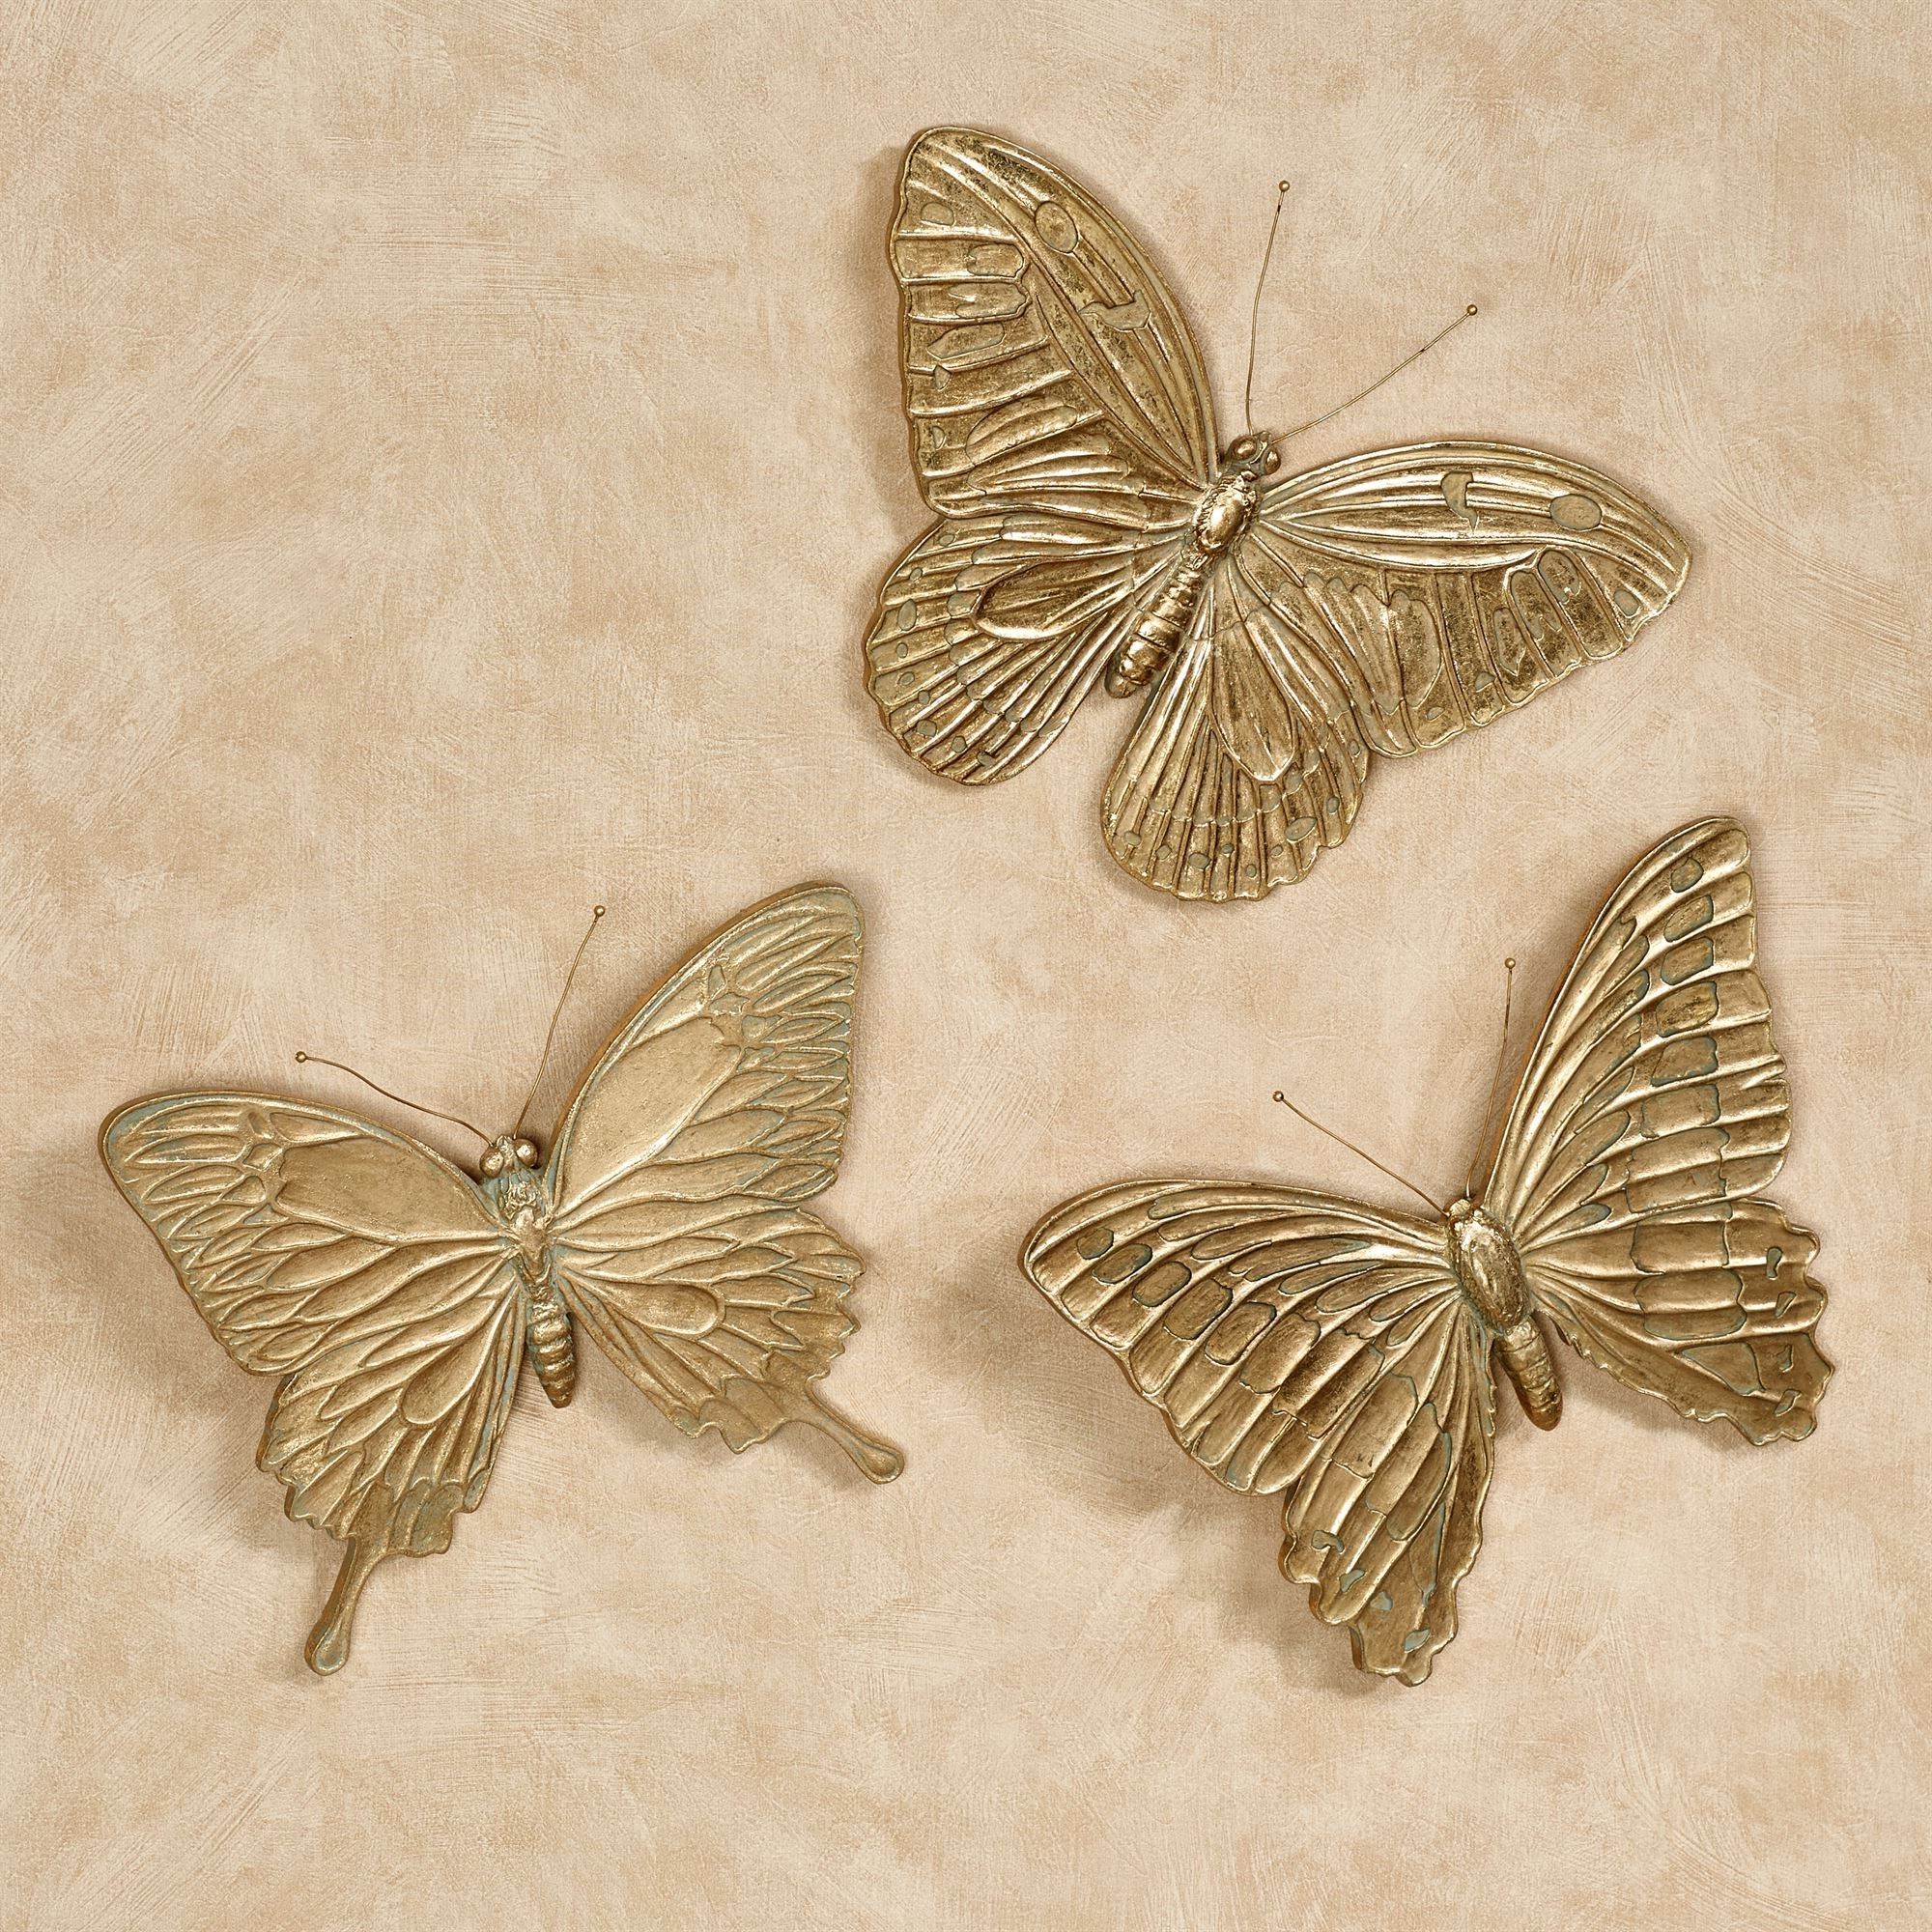 Ceramic Butterfly Wall Art Within 2018 Wall Art, Metal Wall Art, Wooden Wall Art (View 7 of 15)